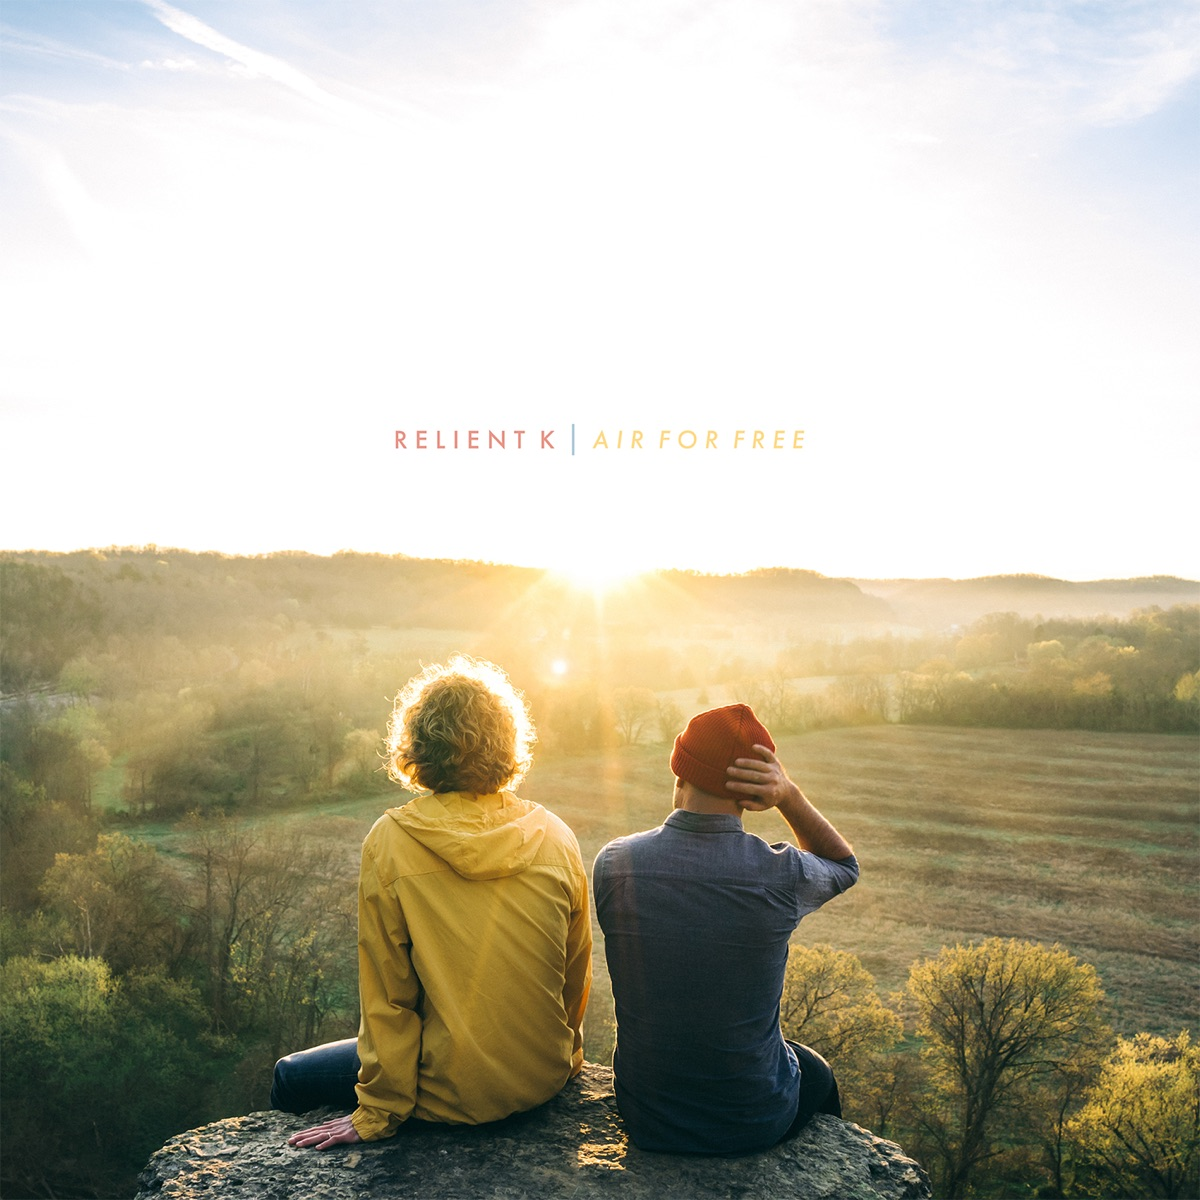 Air for Free Album Cover by Relient K